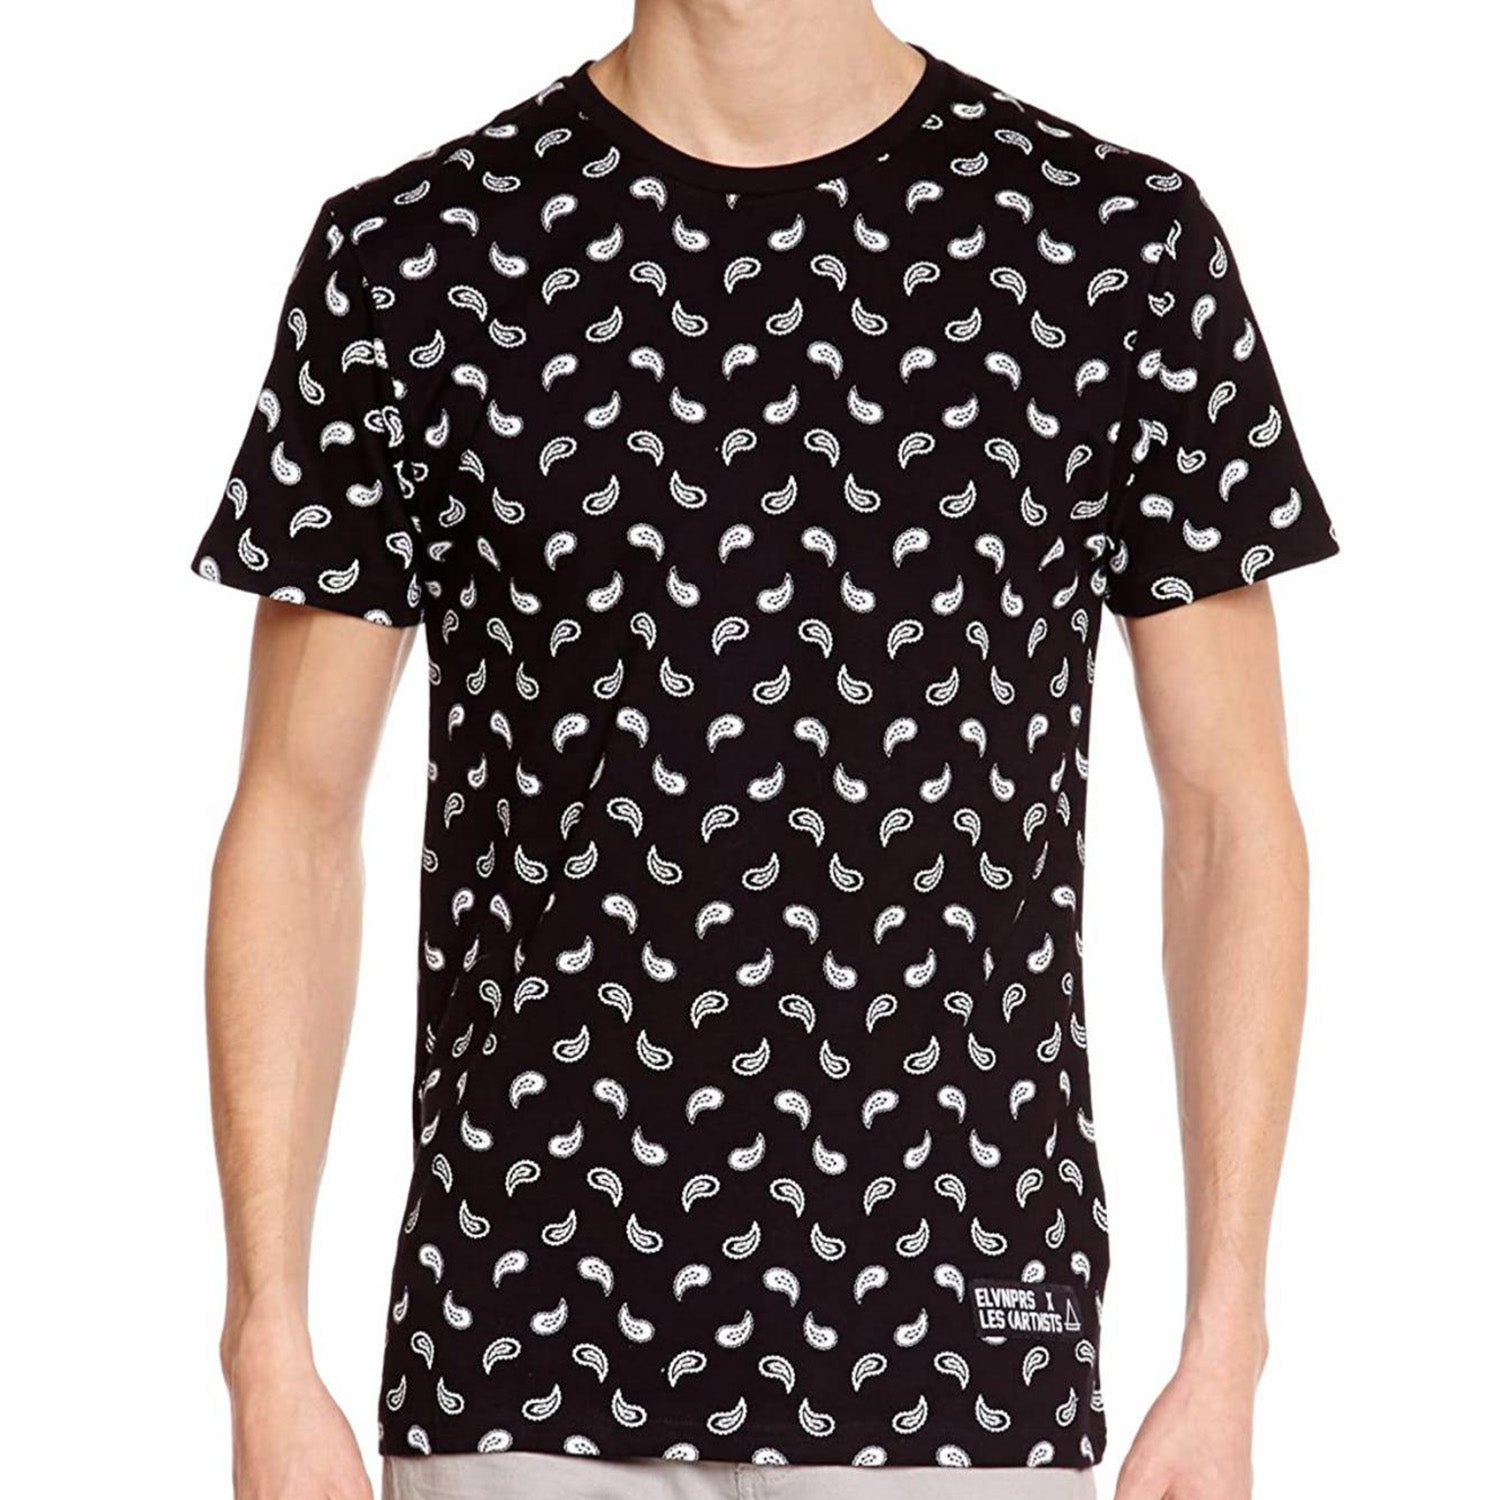 Elevenparis HUPA All over Printed T-Shirt